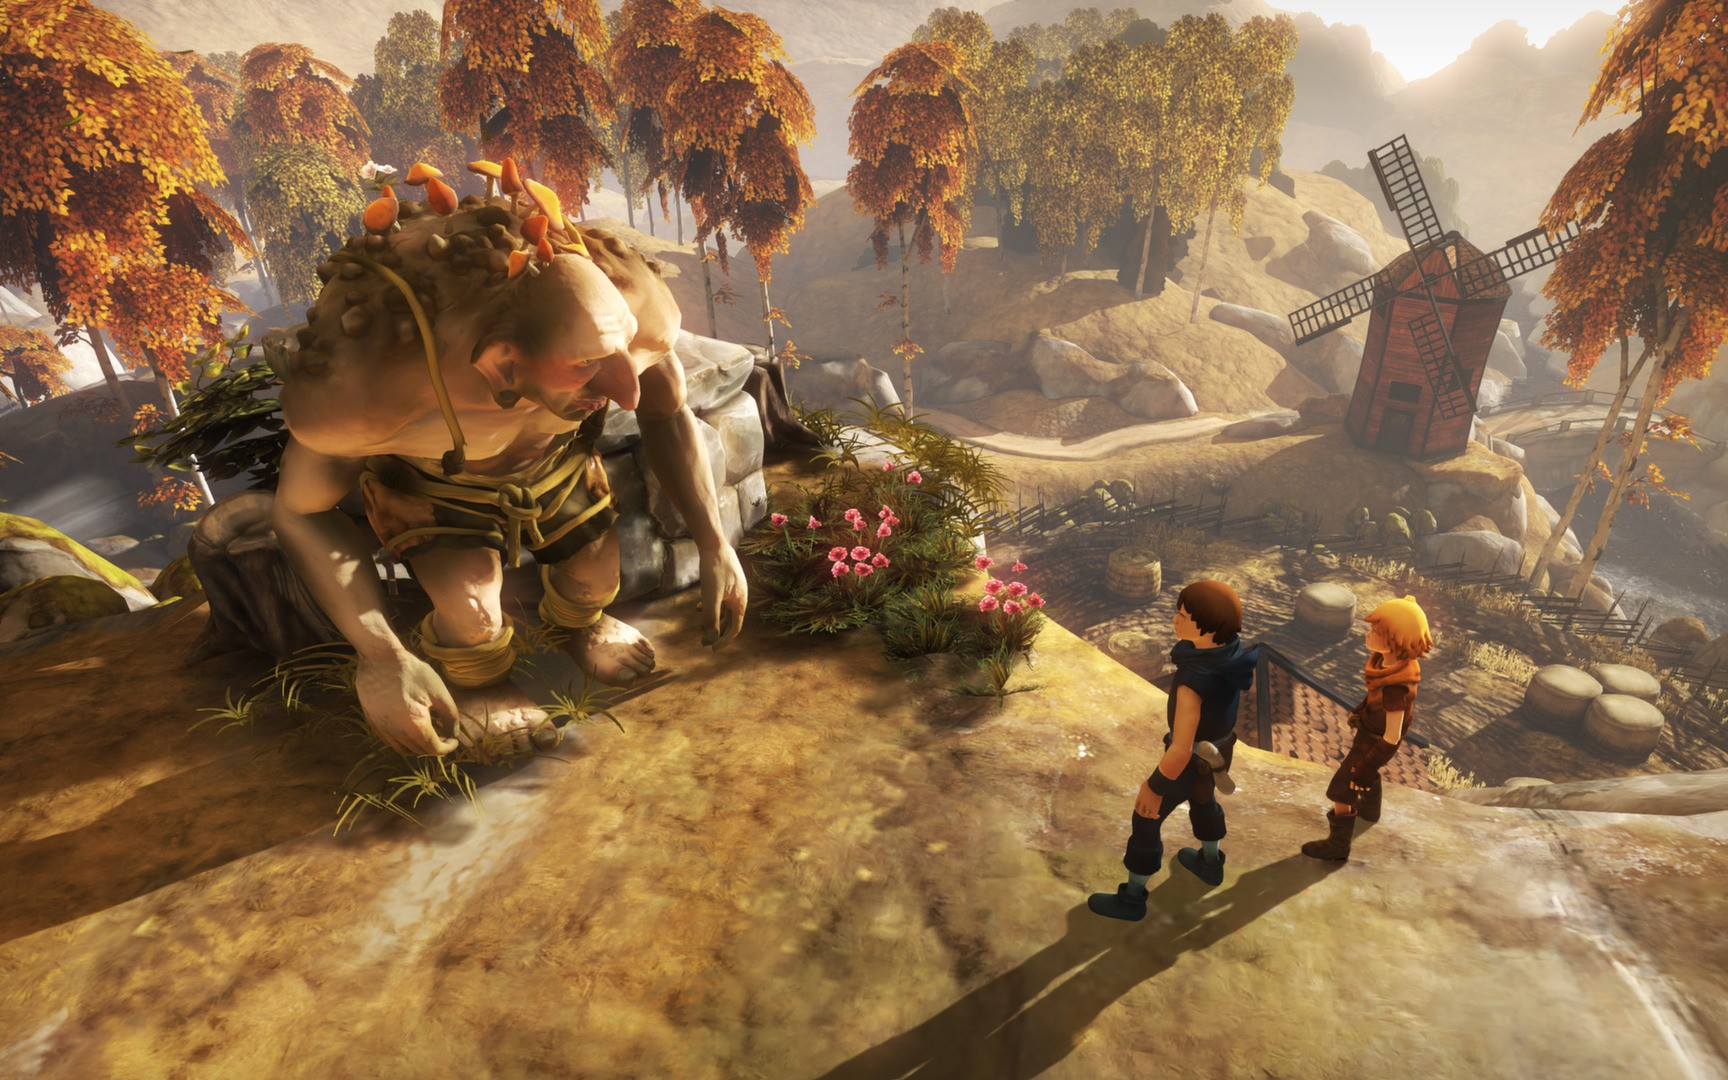 Brothers: A Tale Of Two Sons, one of this week's gaming discounts